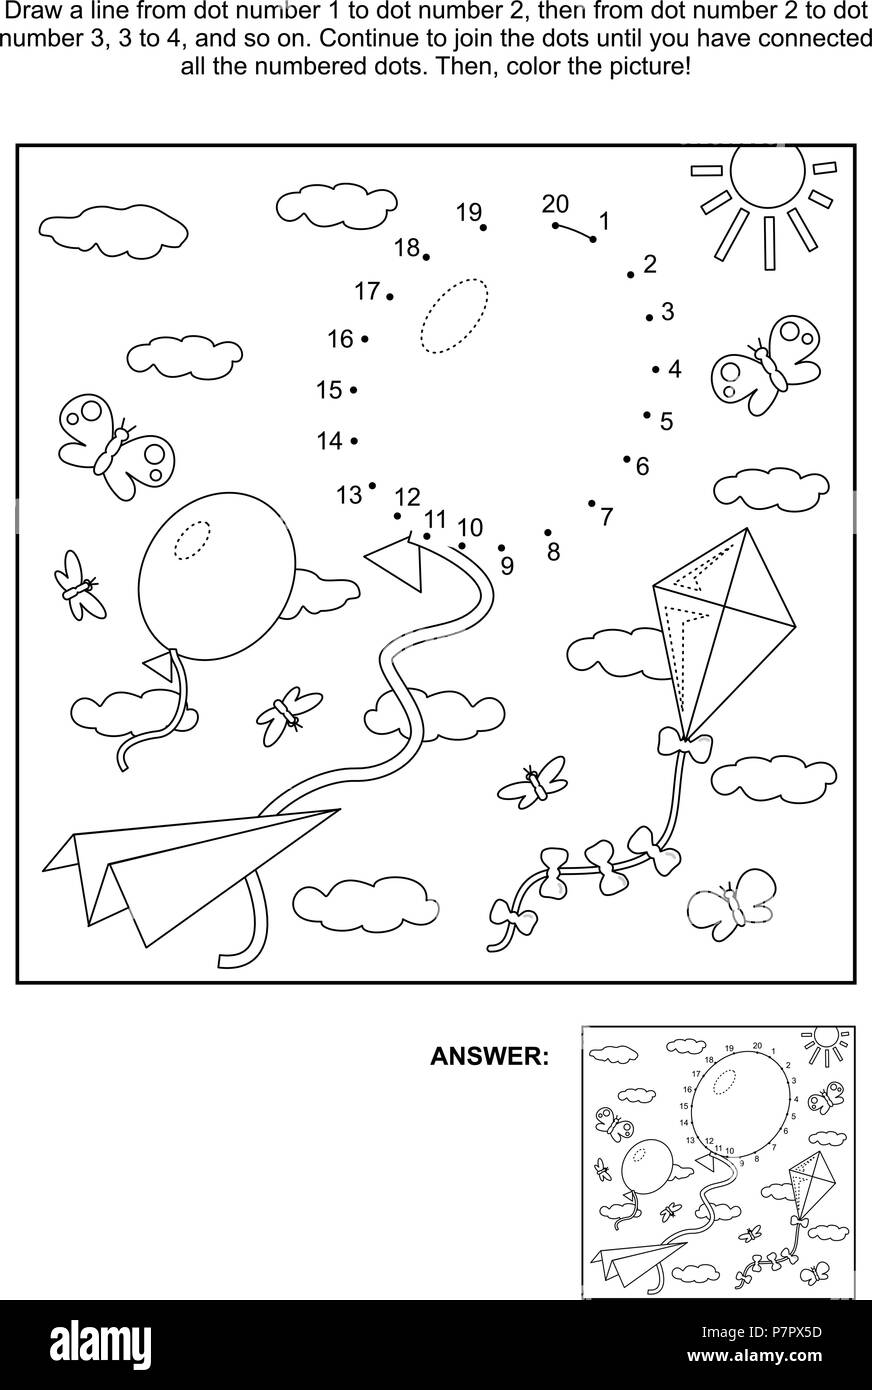 Connect the dots picture puzzle and coloring page with balloons ...